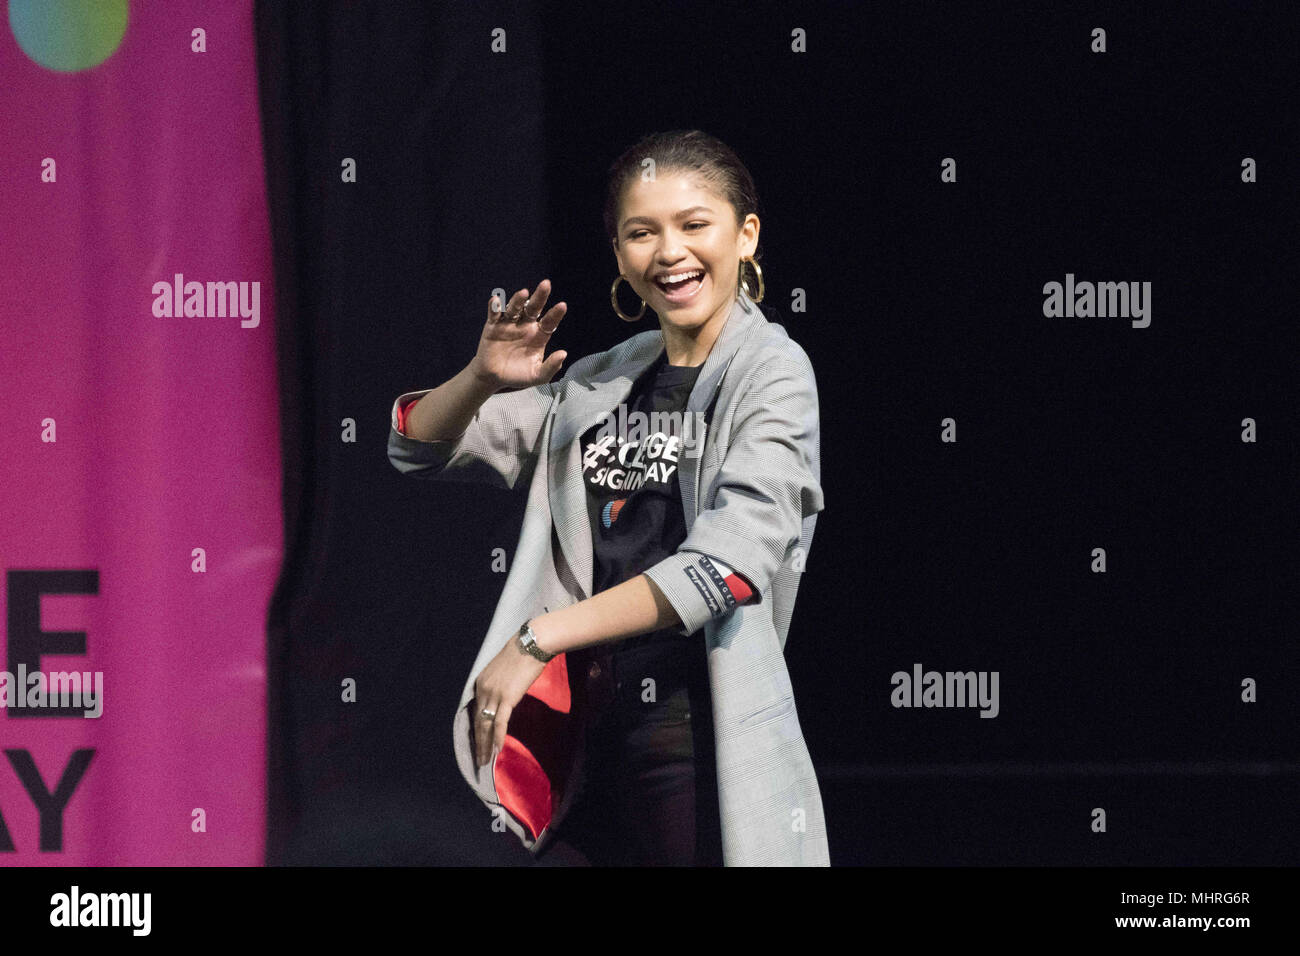 Philadelphia, Pennsylvania, USA. 2nd May, 2018. Actress, ZENDAYA, at the College signing day rally at Temple University's Liacouras Center in Philadelphia Pennsylvania Credit: Ricky Fitchett/ZUMA Wire/Alamy Live News Stock Photo